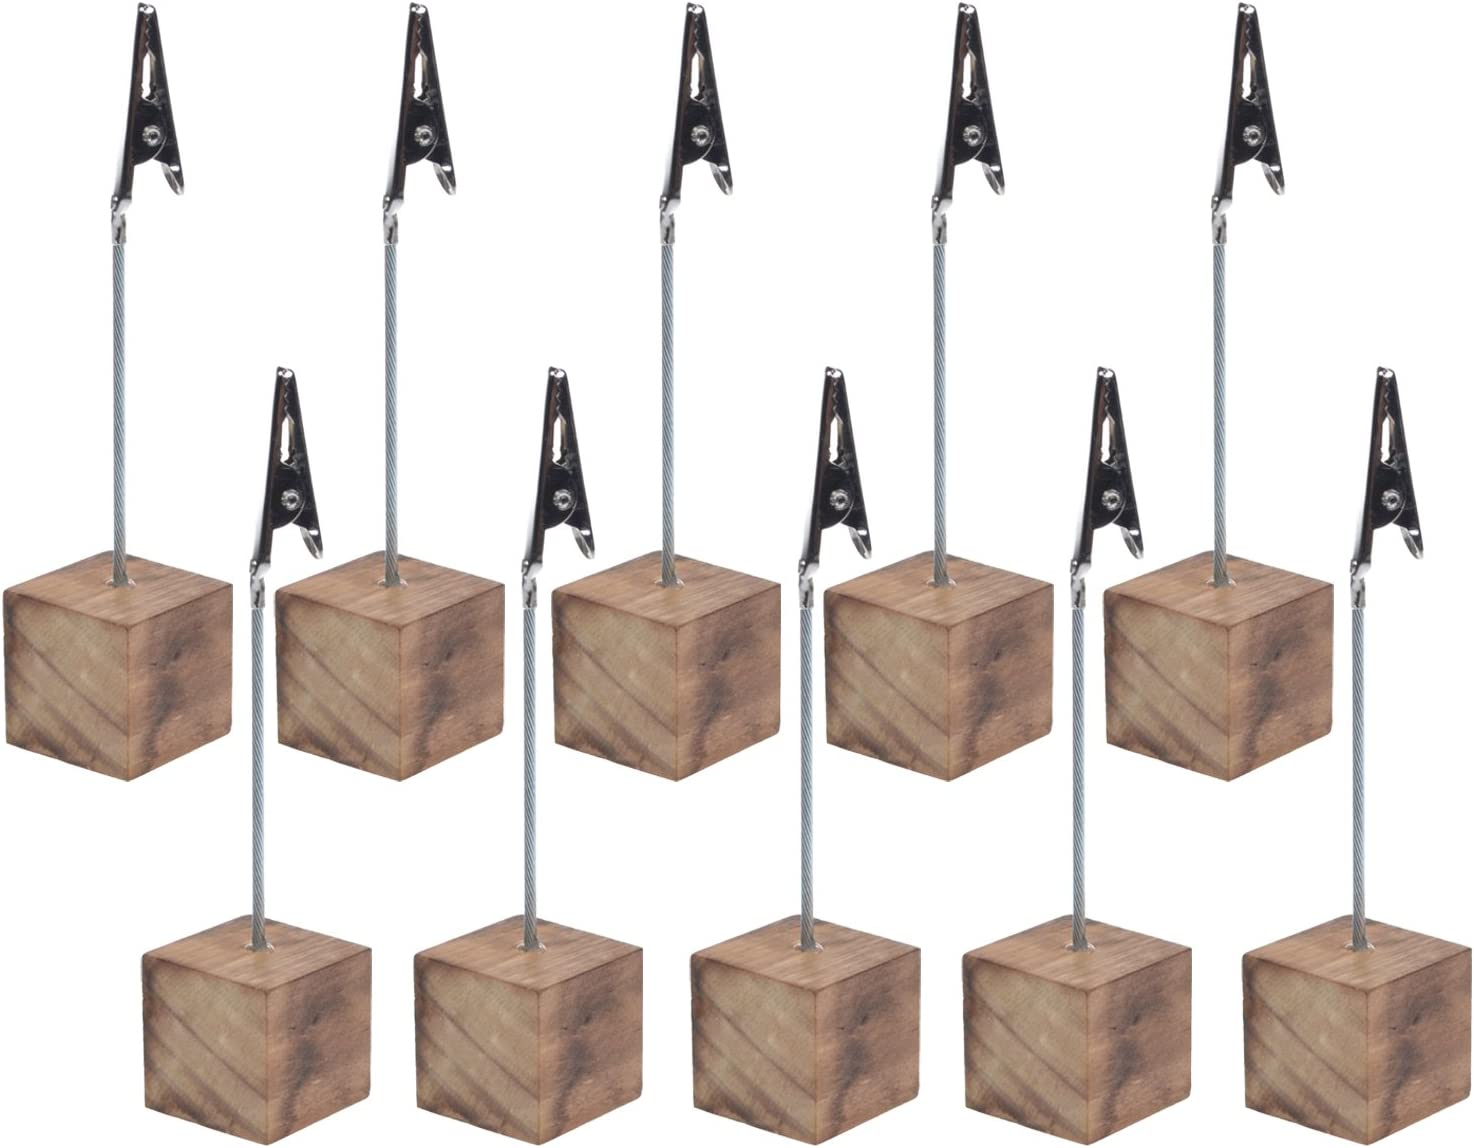 Cosmos 10 Pcs Lightweight Cube Base Memo Clips Holder with Alligator Clip Clasp for Displaying Number Cards (Wooden Base): Kitchen & Dining